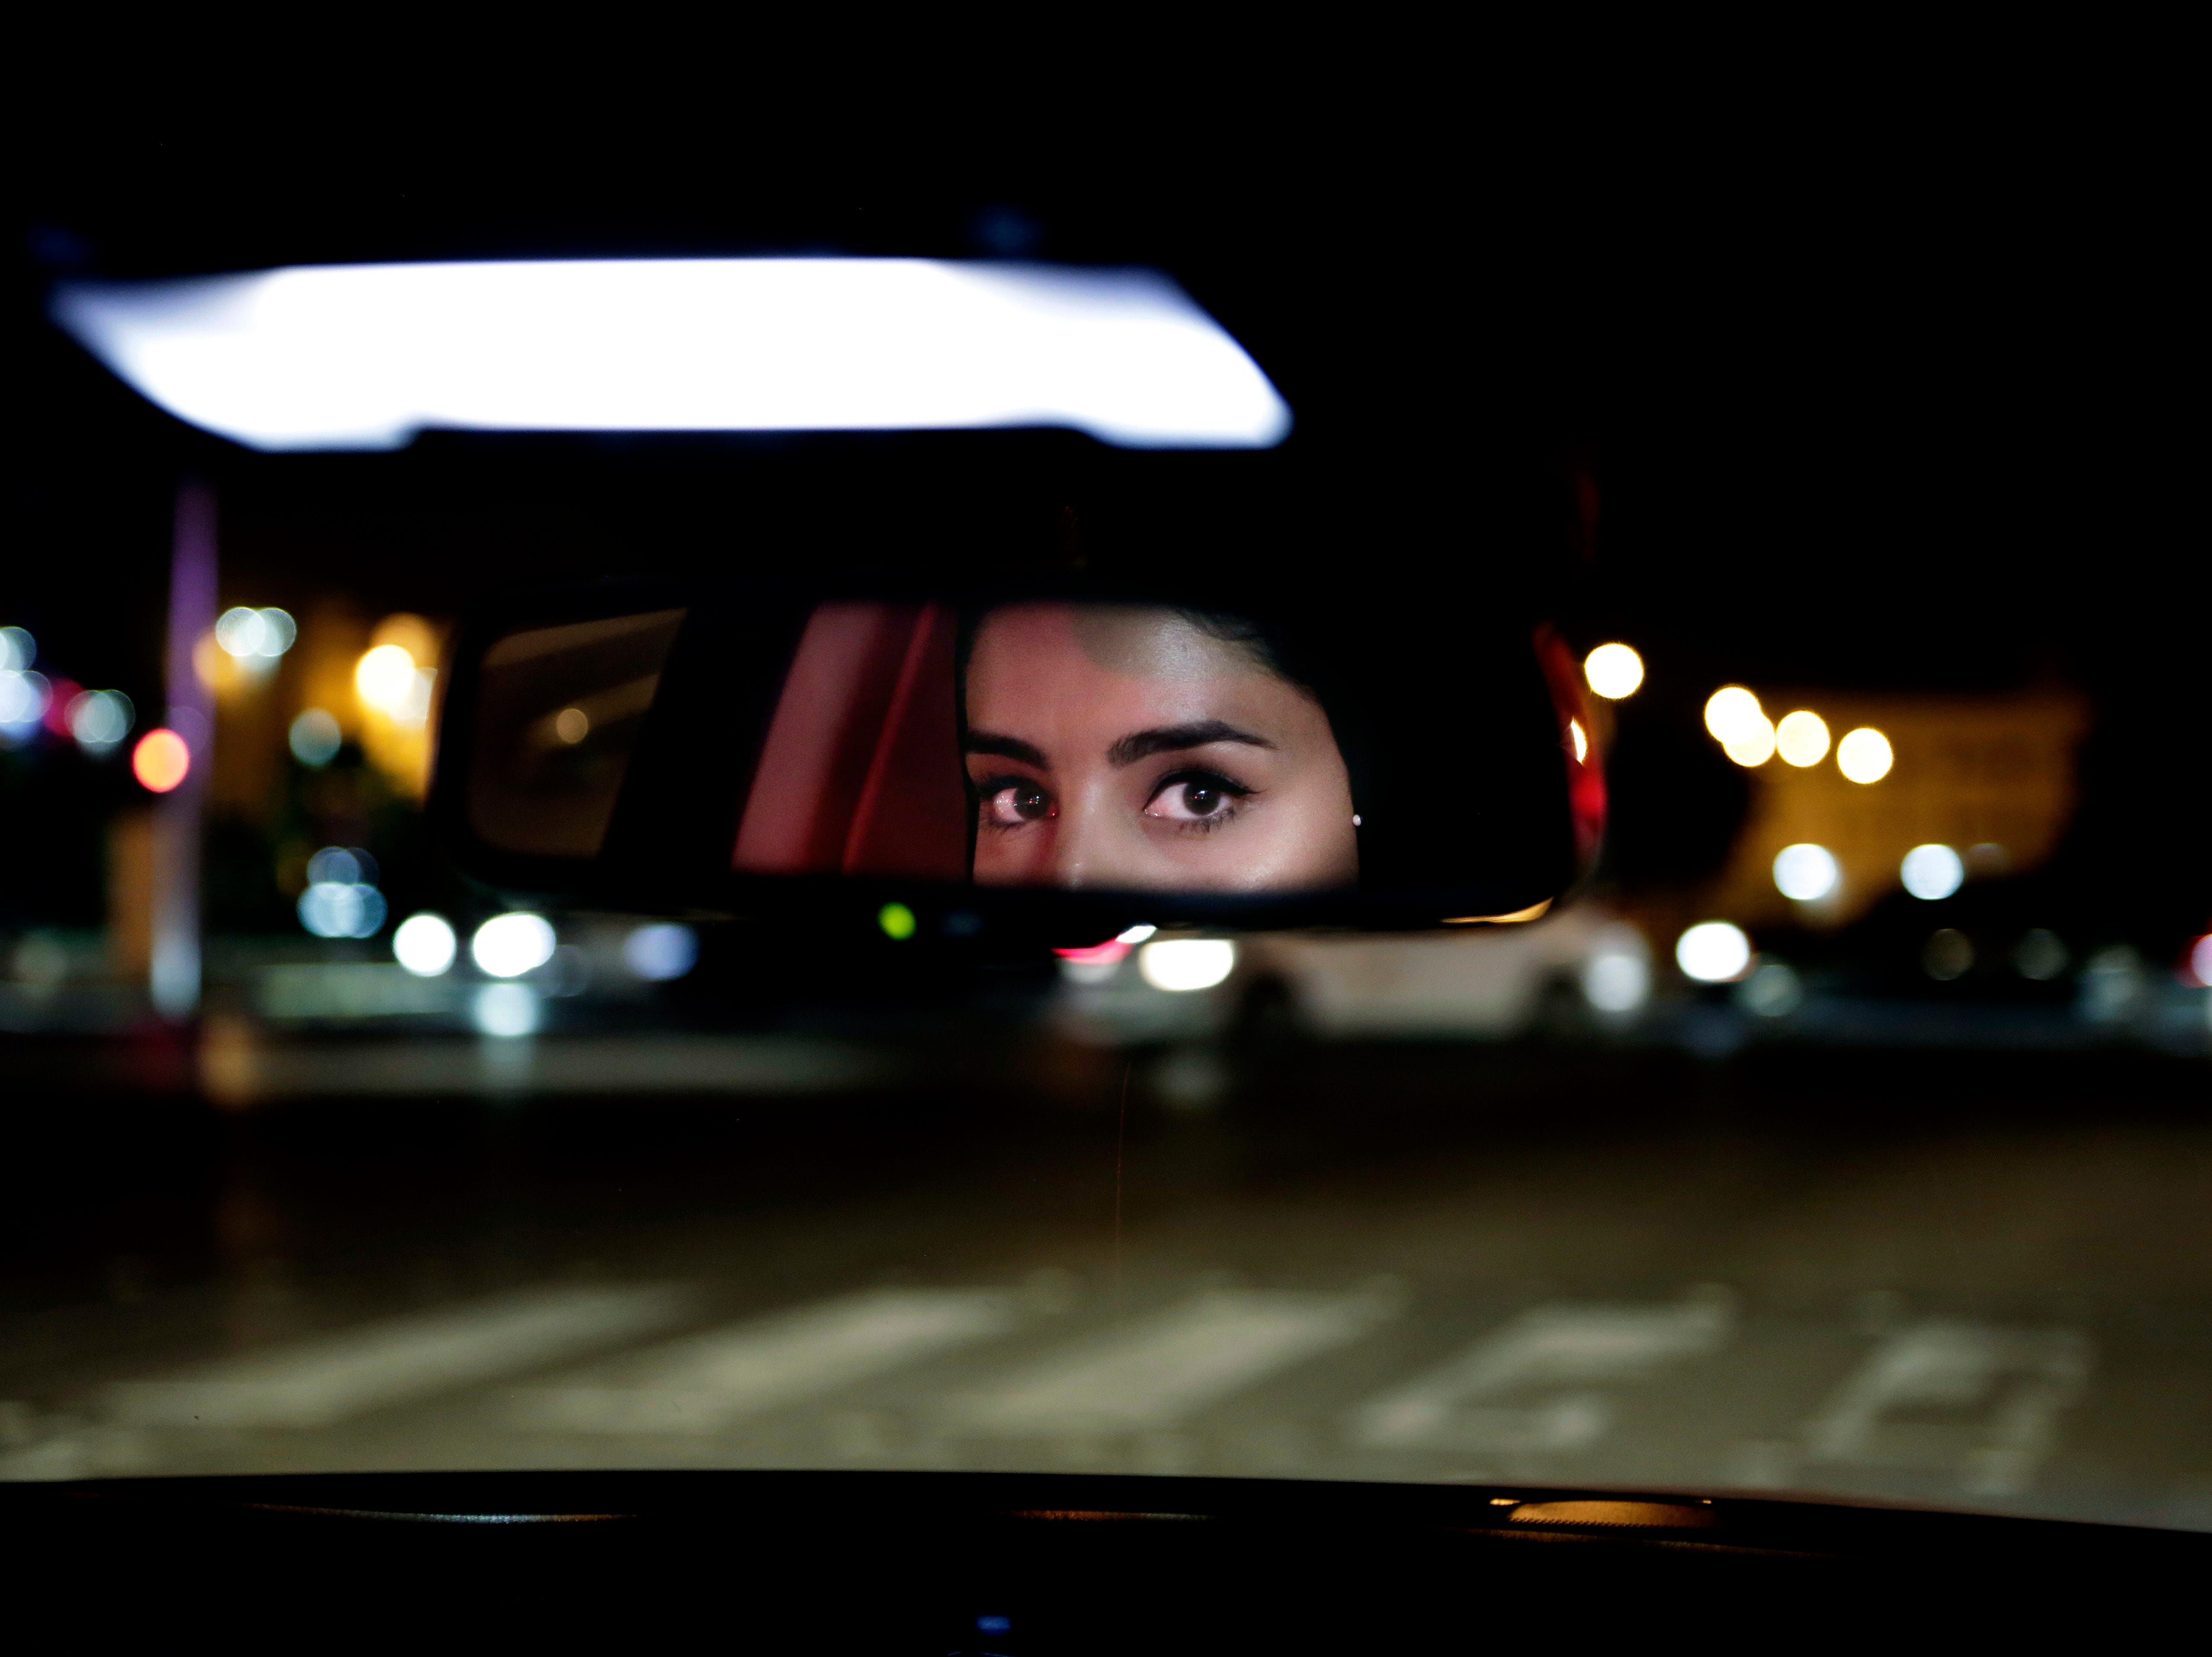 Hessah al-Ajaji drives her car down busy Tahlia Street after midnight for the first time in Saudi Arabia's capital Riyadh on June 24, 2018, just minutes after the world's last remaining ban on women driving was lifted.